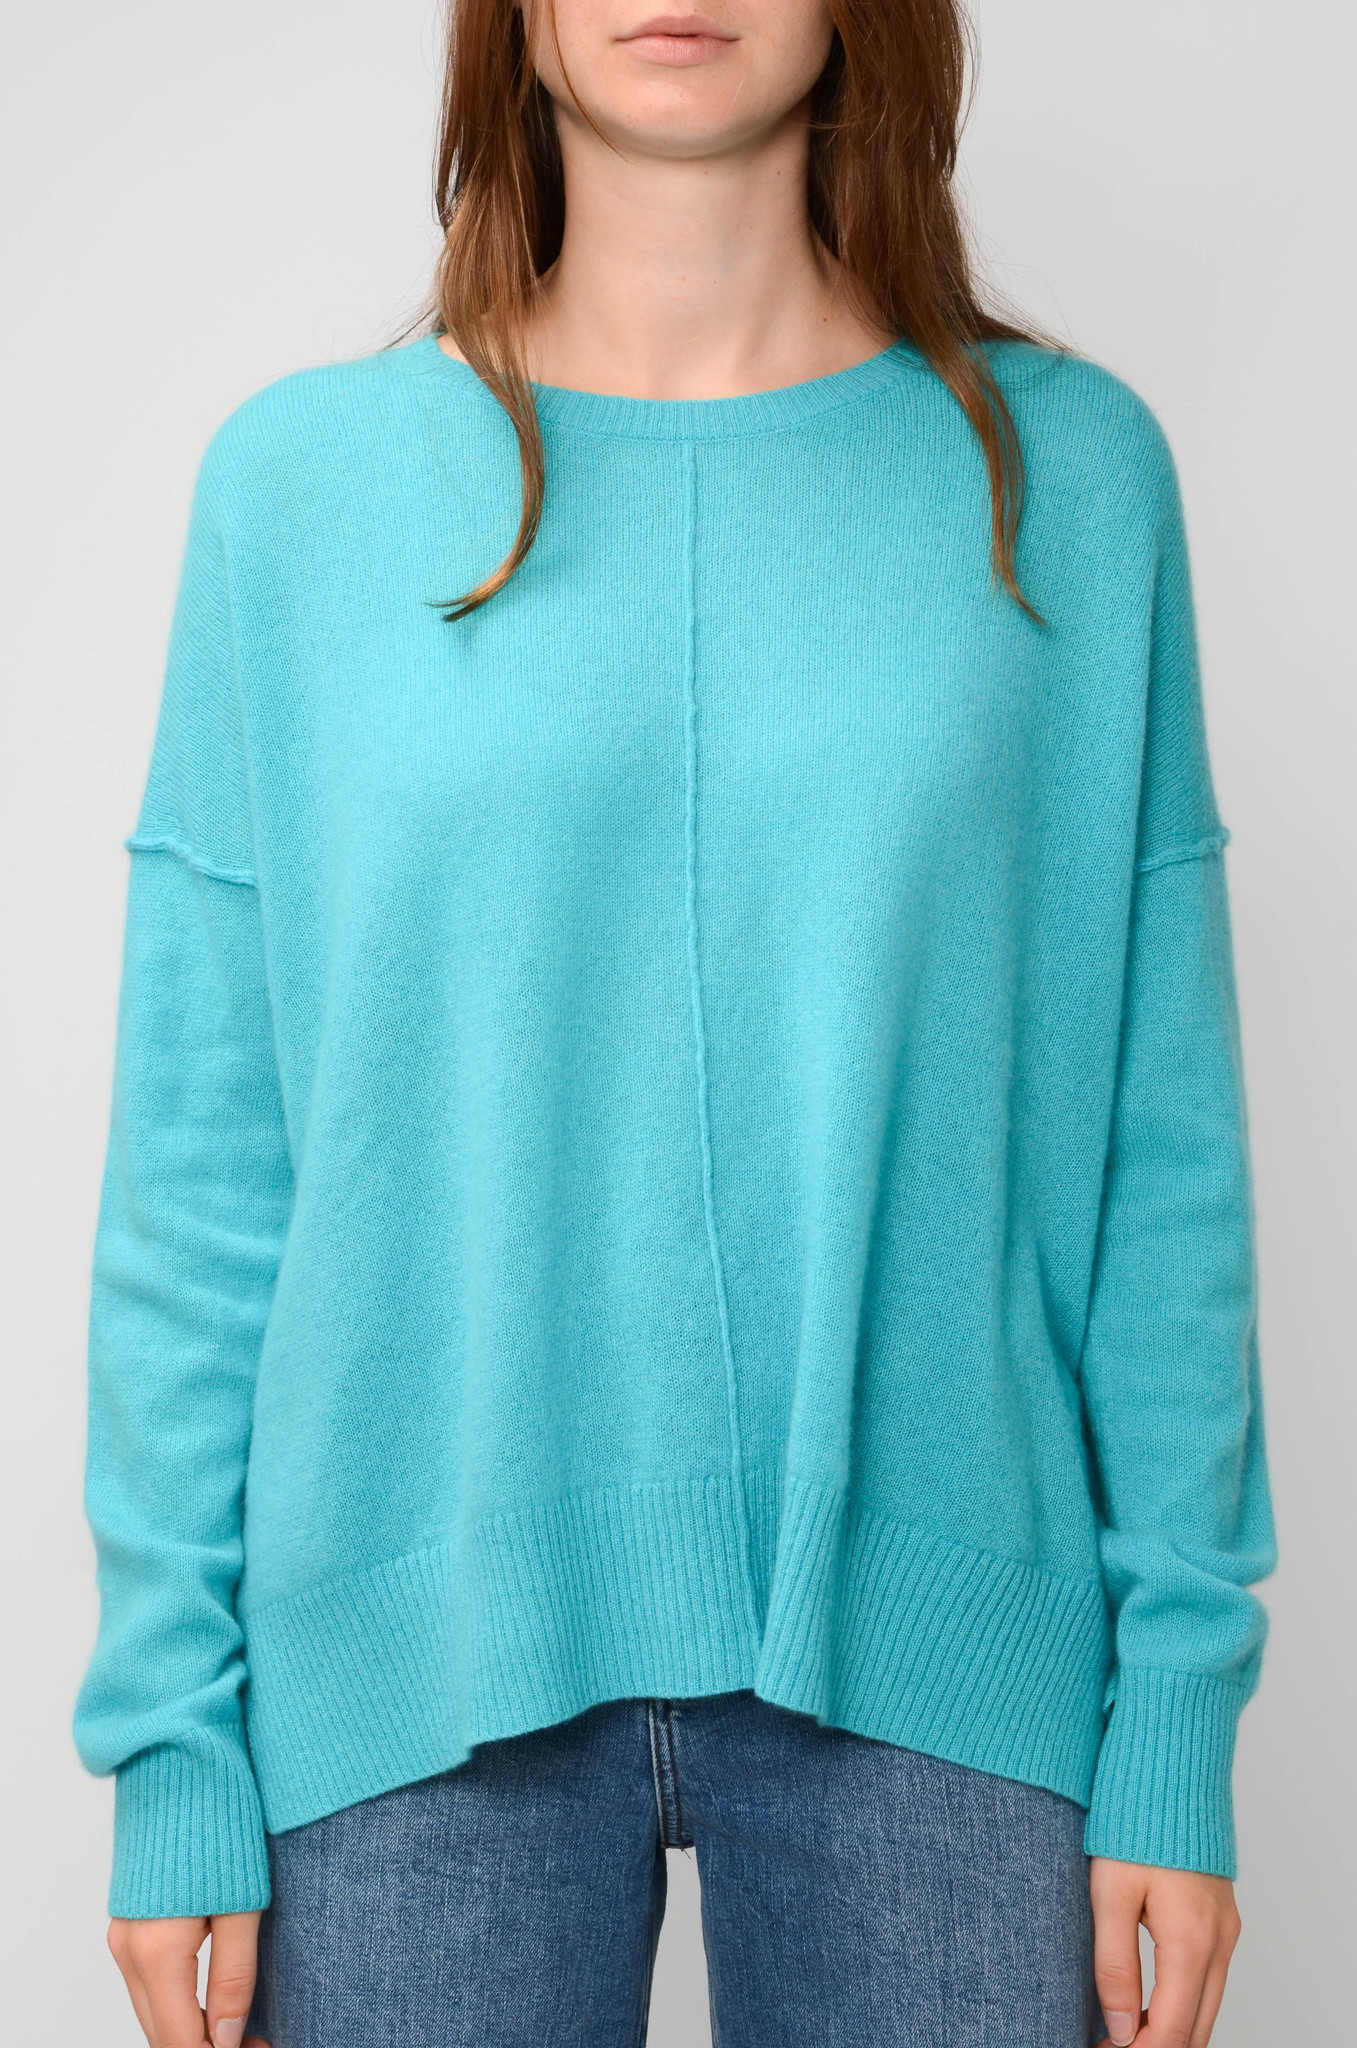 KENZA SWEATER IN TURQUOISE-1